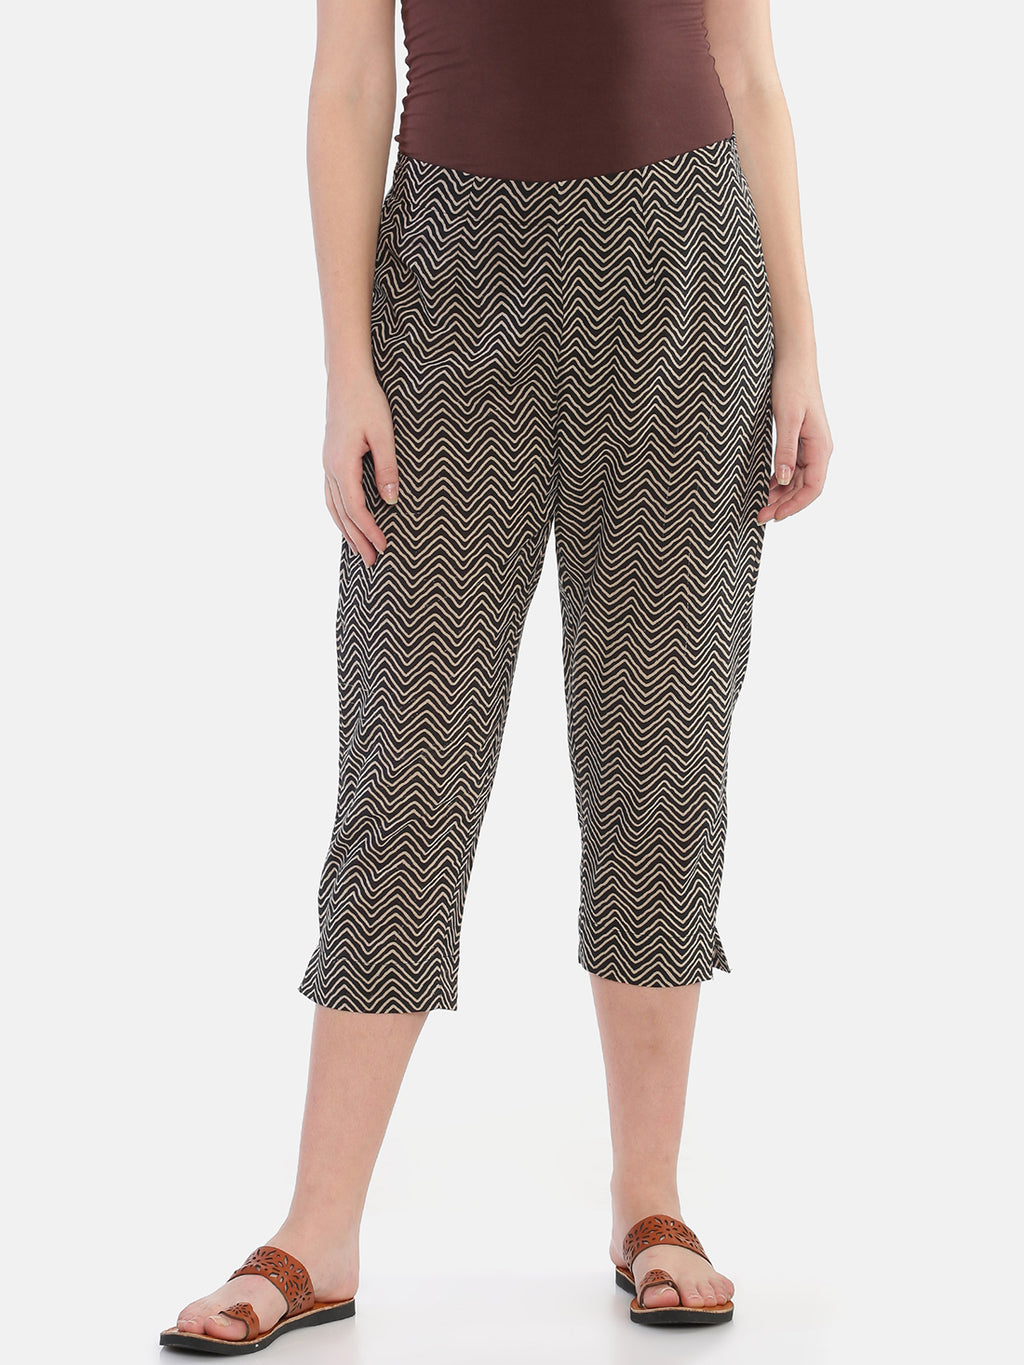 Black Naturally Dyed Cotton Chevron Hand Block Printed Cropped Cigarette Pants